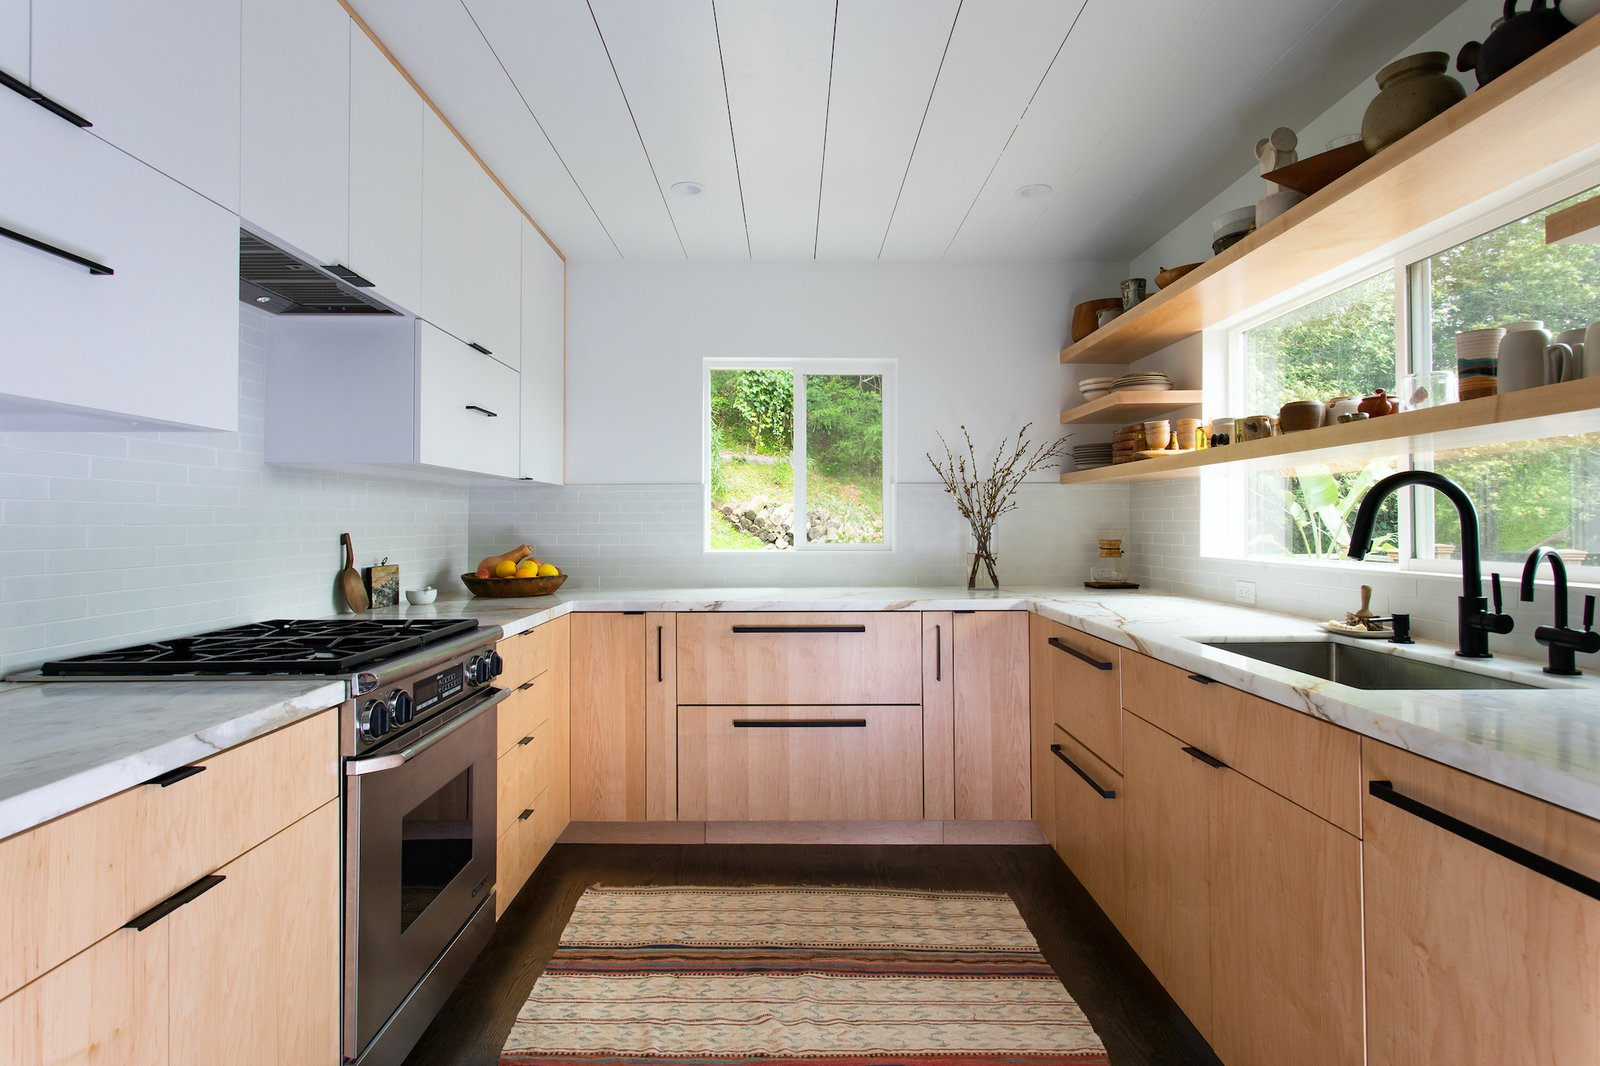 """Shands paired maple wood kitchen cabinets with veined marble countertops to provide character to the space without overwhelming it. """"These materials, complemented by the open shelves with stacked ceramics, are key to the experience,"""" she says. Sub-Zero undercounter refrigerators and freezer opened the kitchen up to allow for more counter space."""